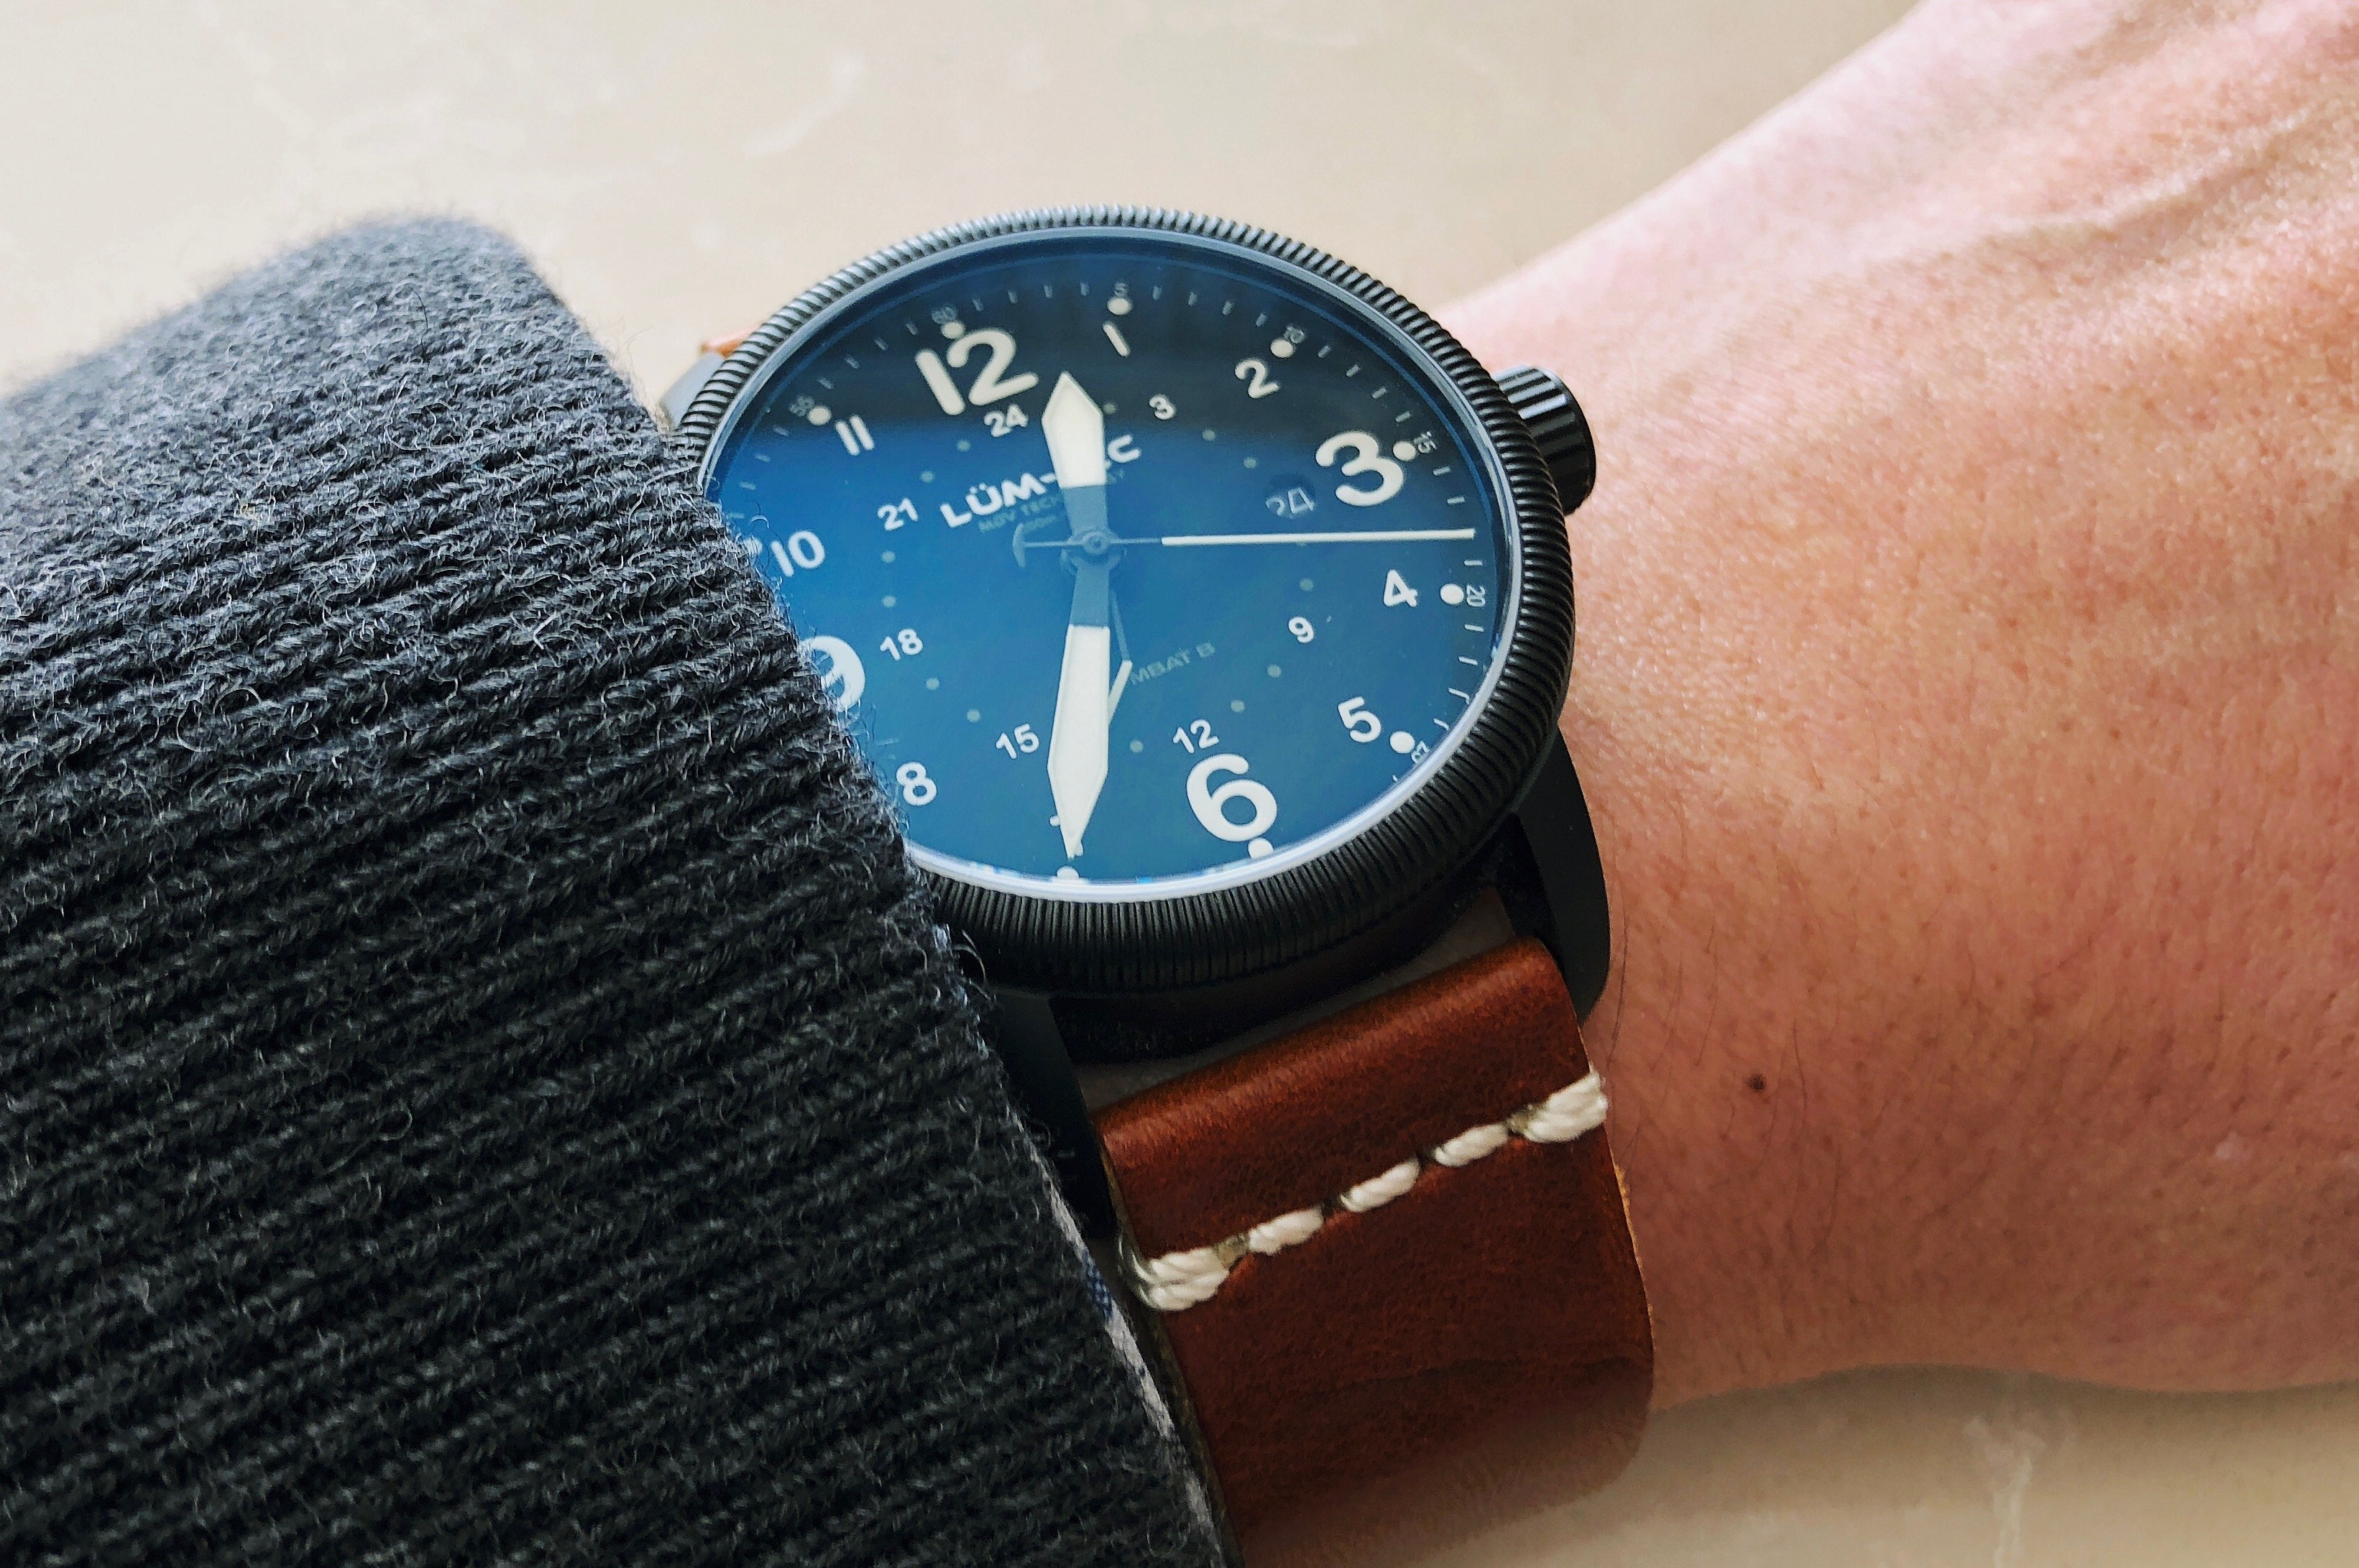 samsung apps frontier watches enough gear features bad not review lots of